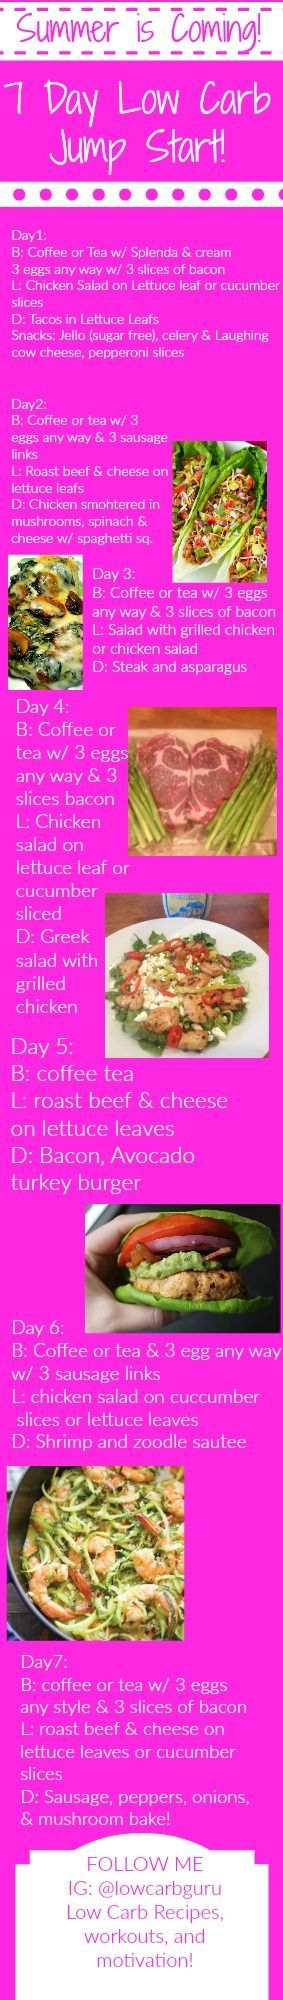 Summer Is Coming! 5 Day Low Carb Jump Start! via @5mintohealth